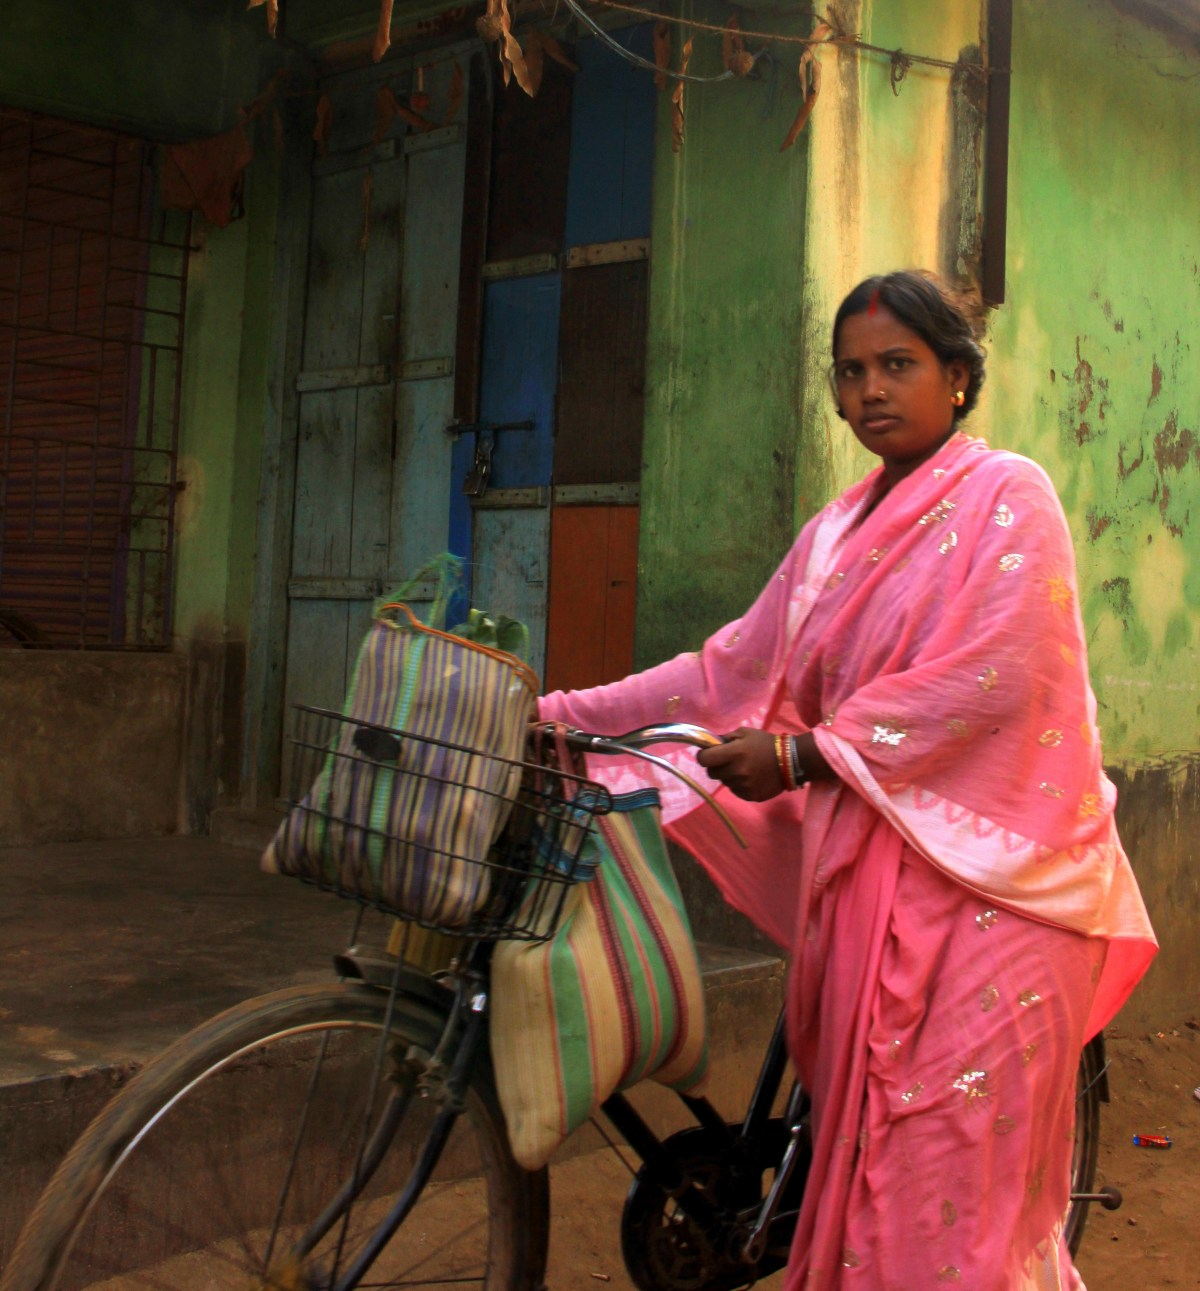 Village woman cycling in Amadpur